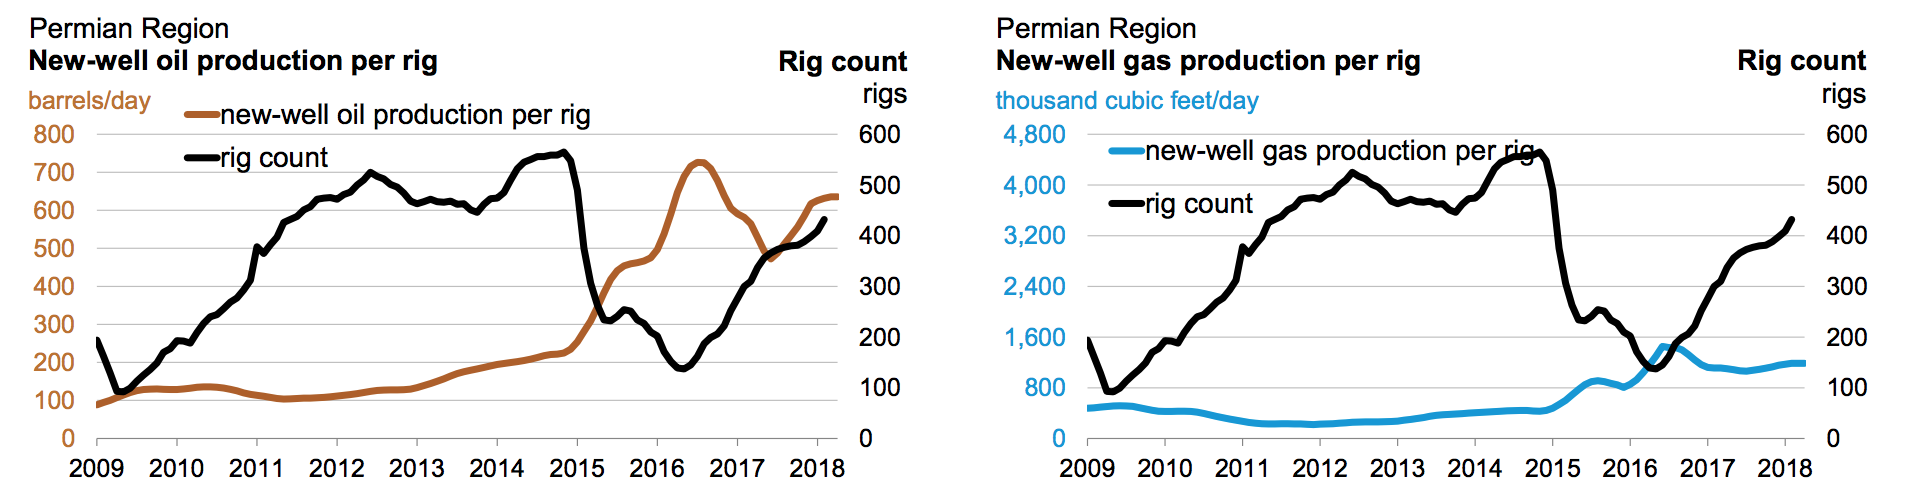 Permian Region Oil Production Chart